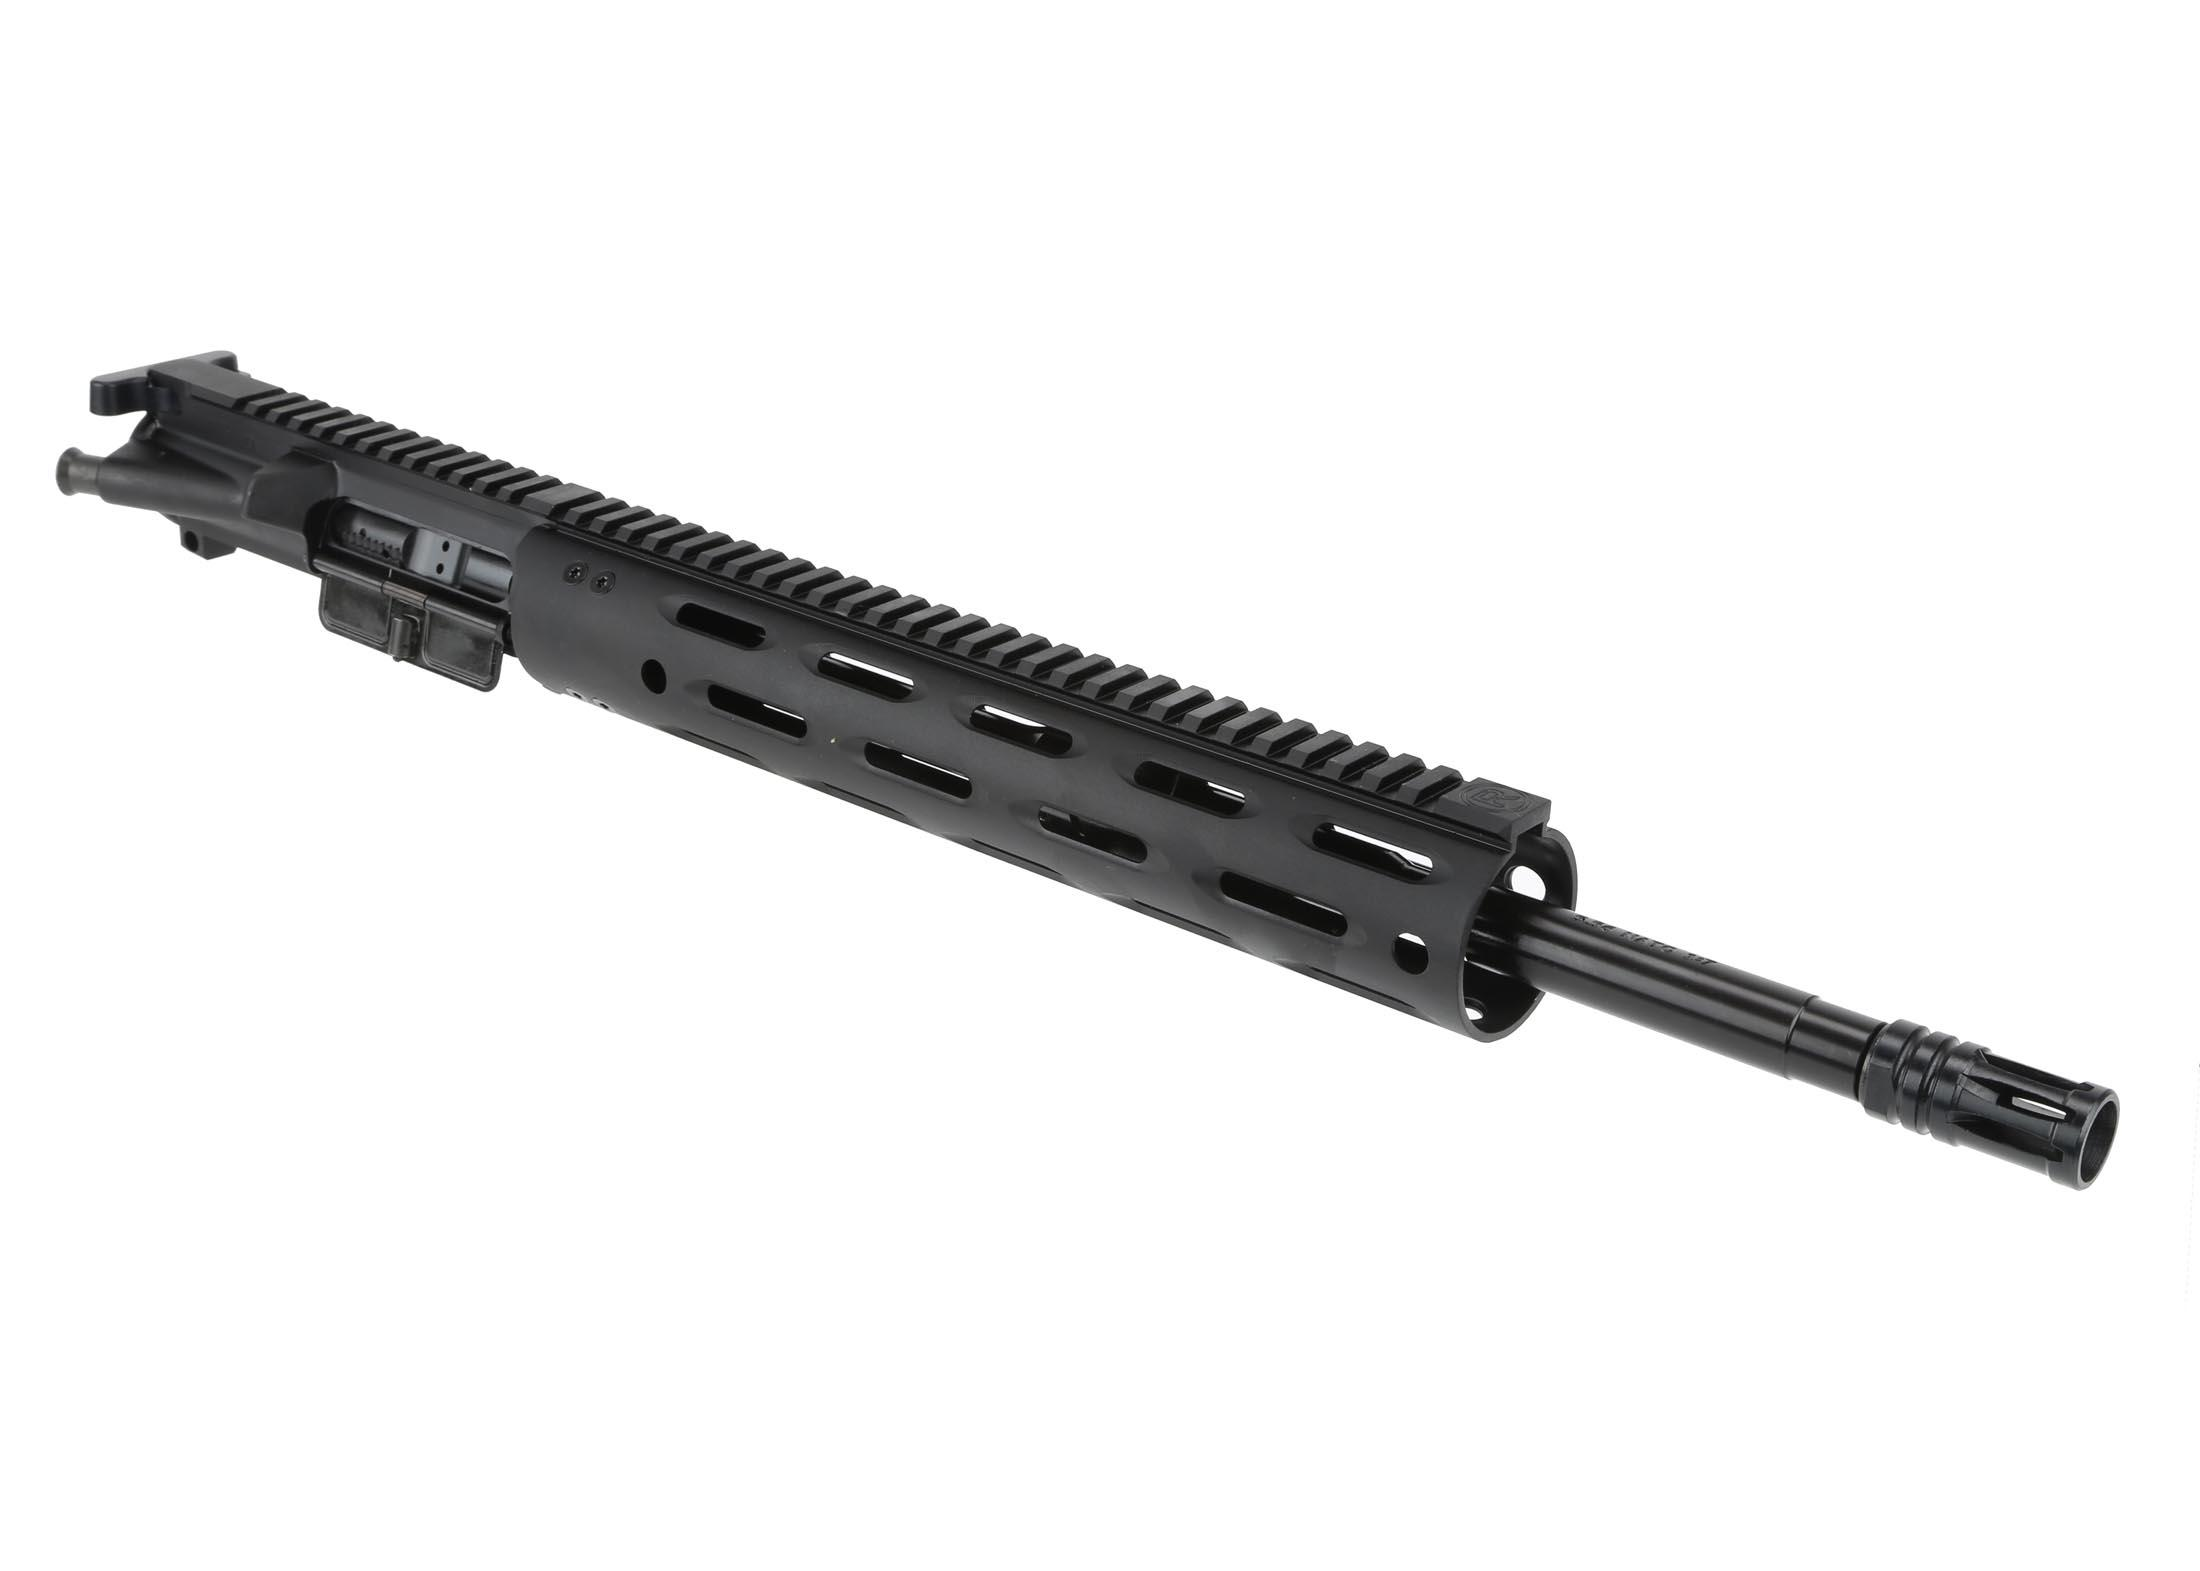 "Radical Firearms 16 5.56 NATO 1:7 Carbine Length M4 Complete Upper - 12"" MOE FGS Rail"